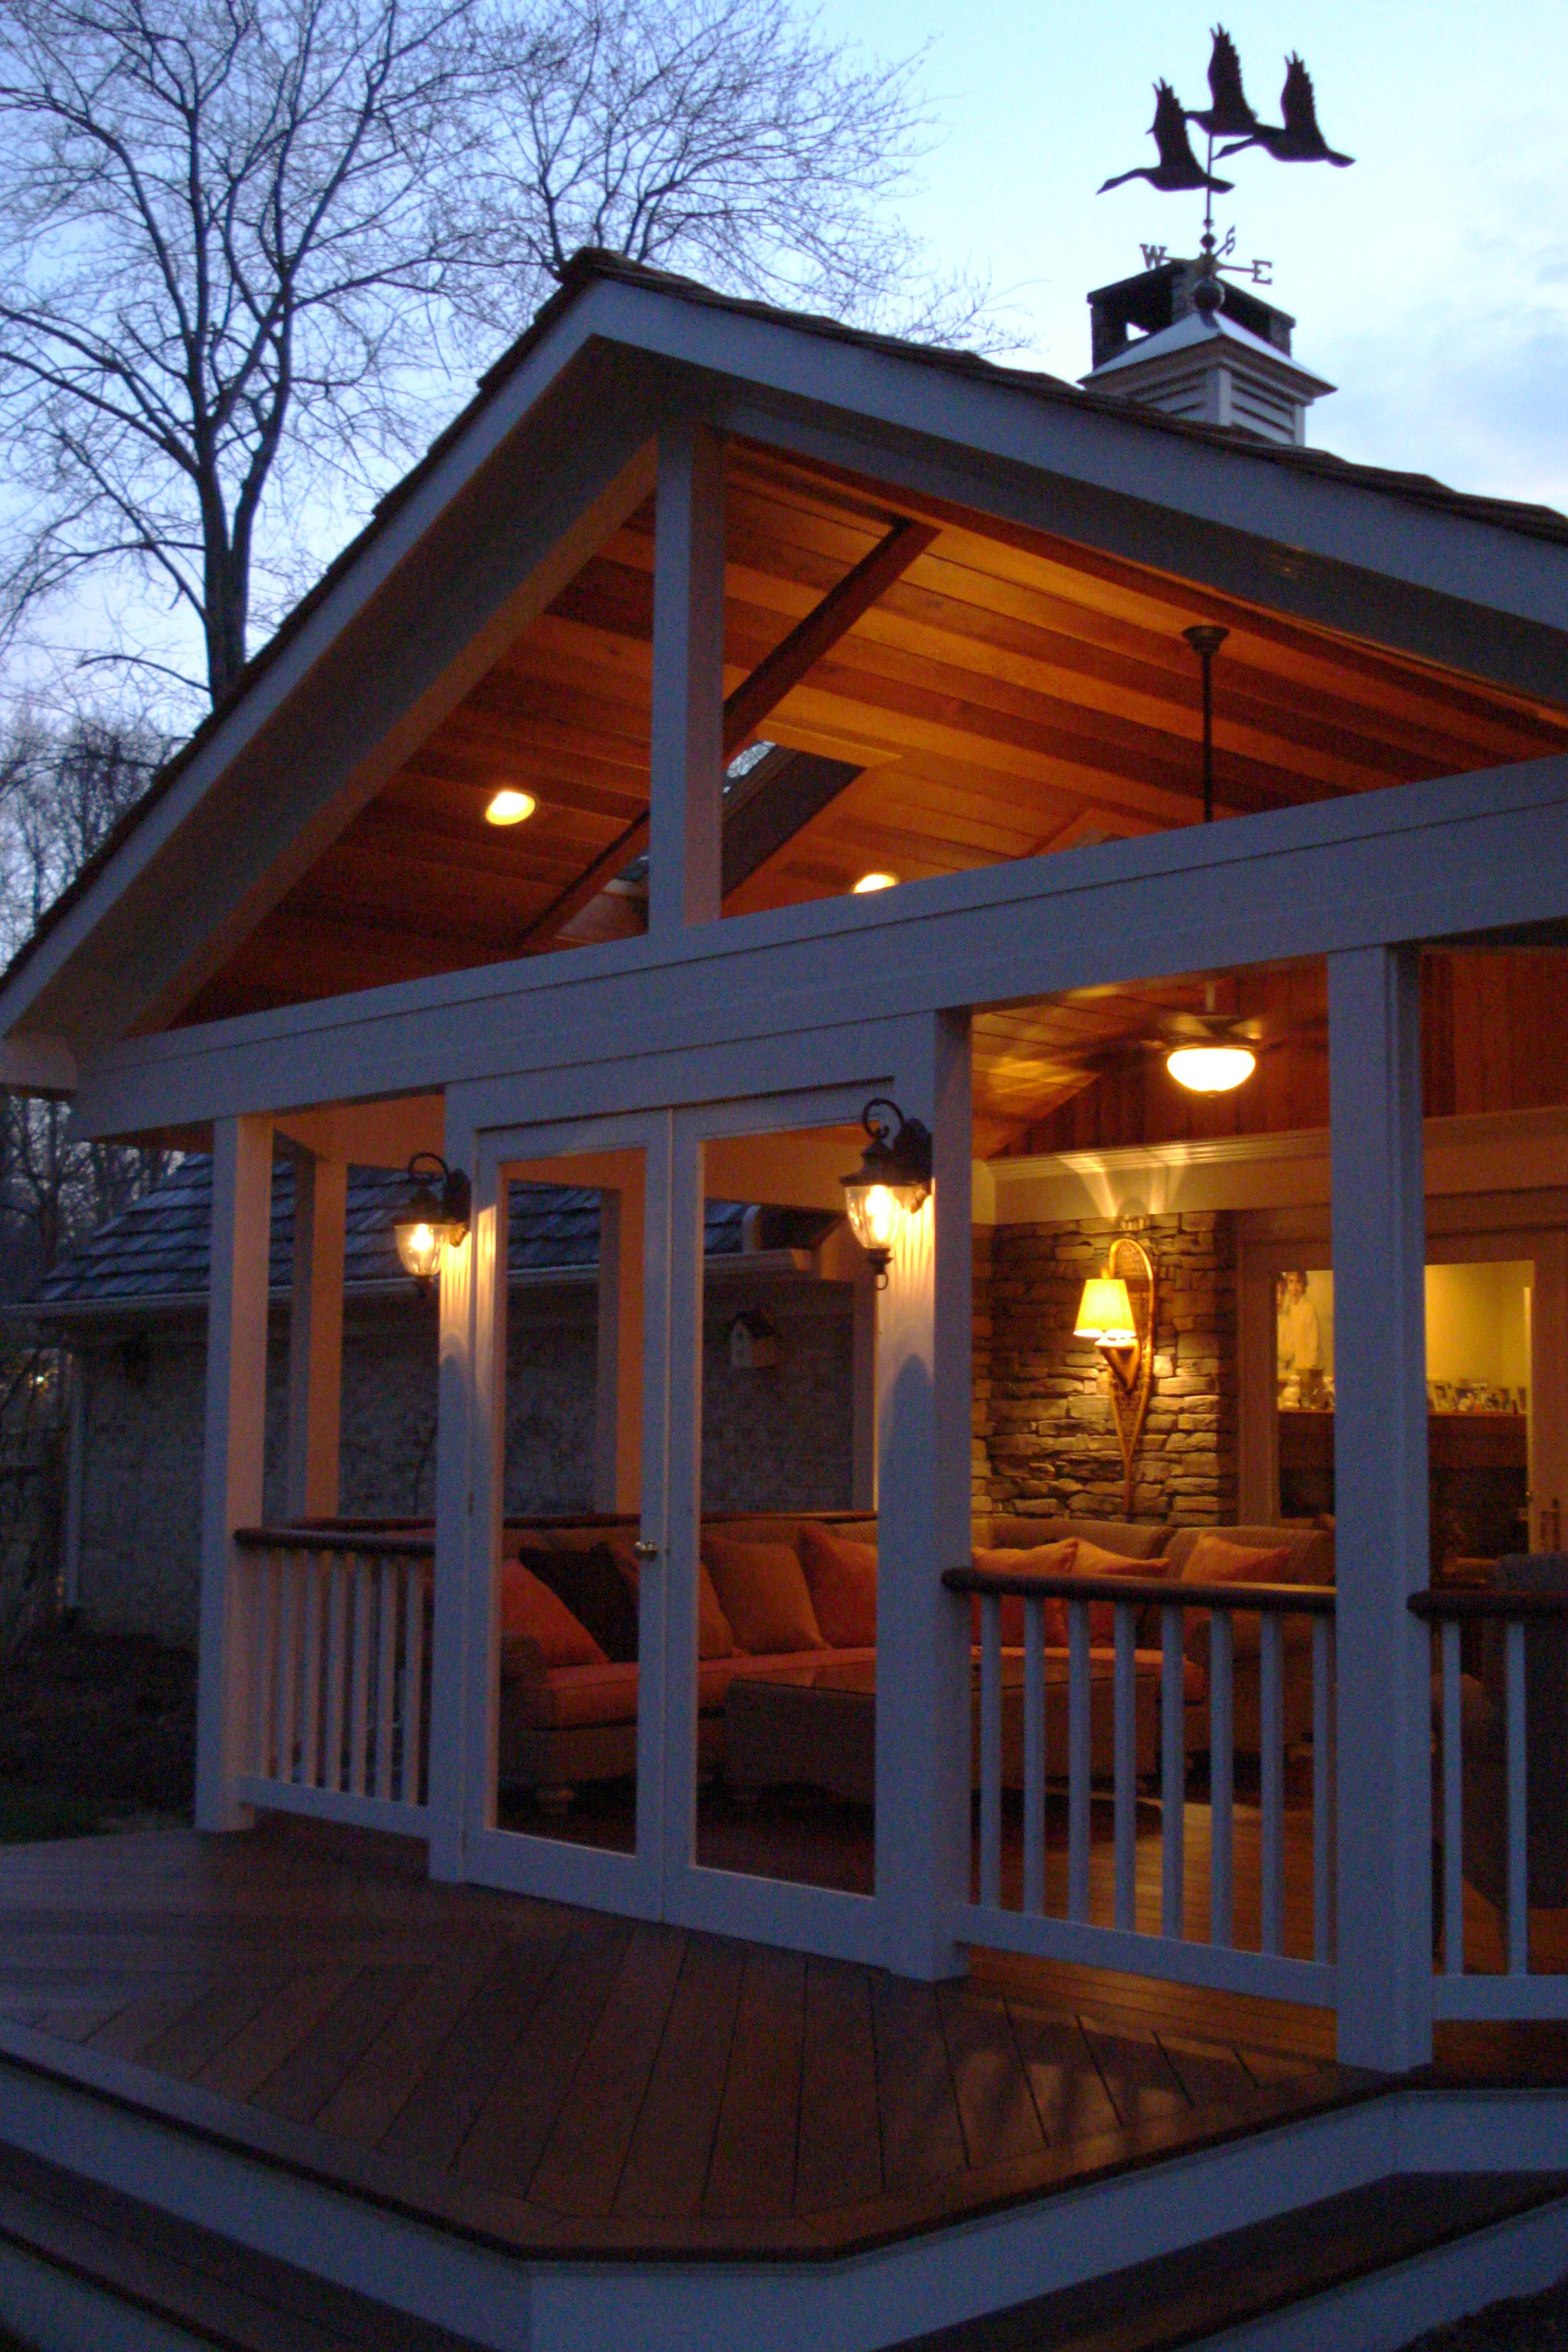 With A High Open Gable Roof This Covered Porch Will Be A